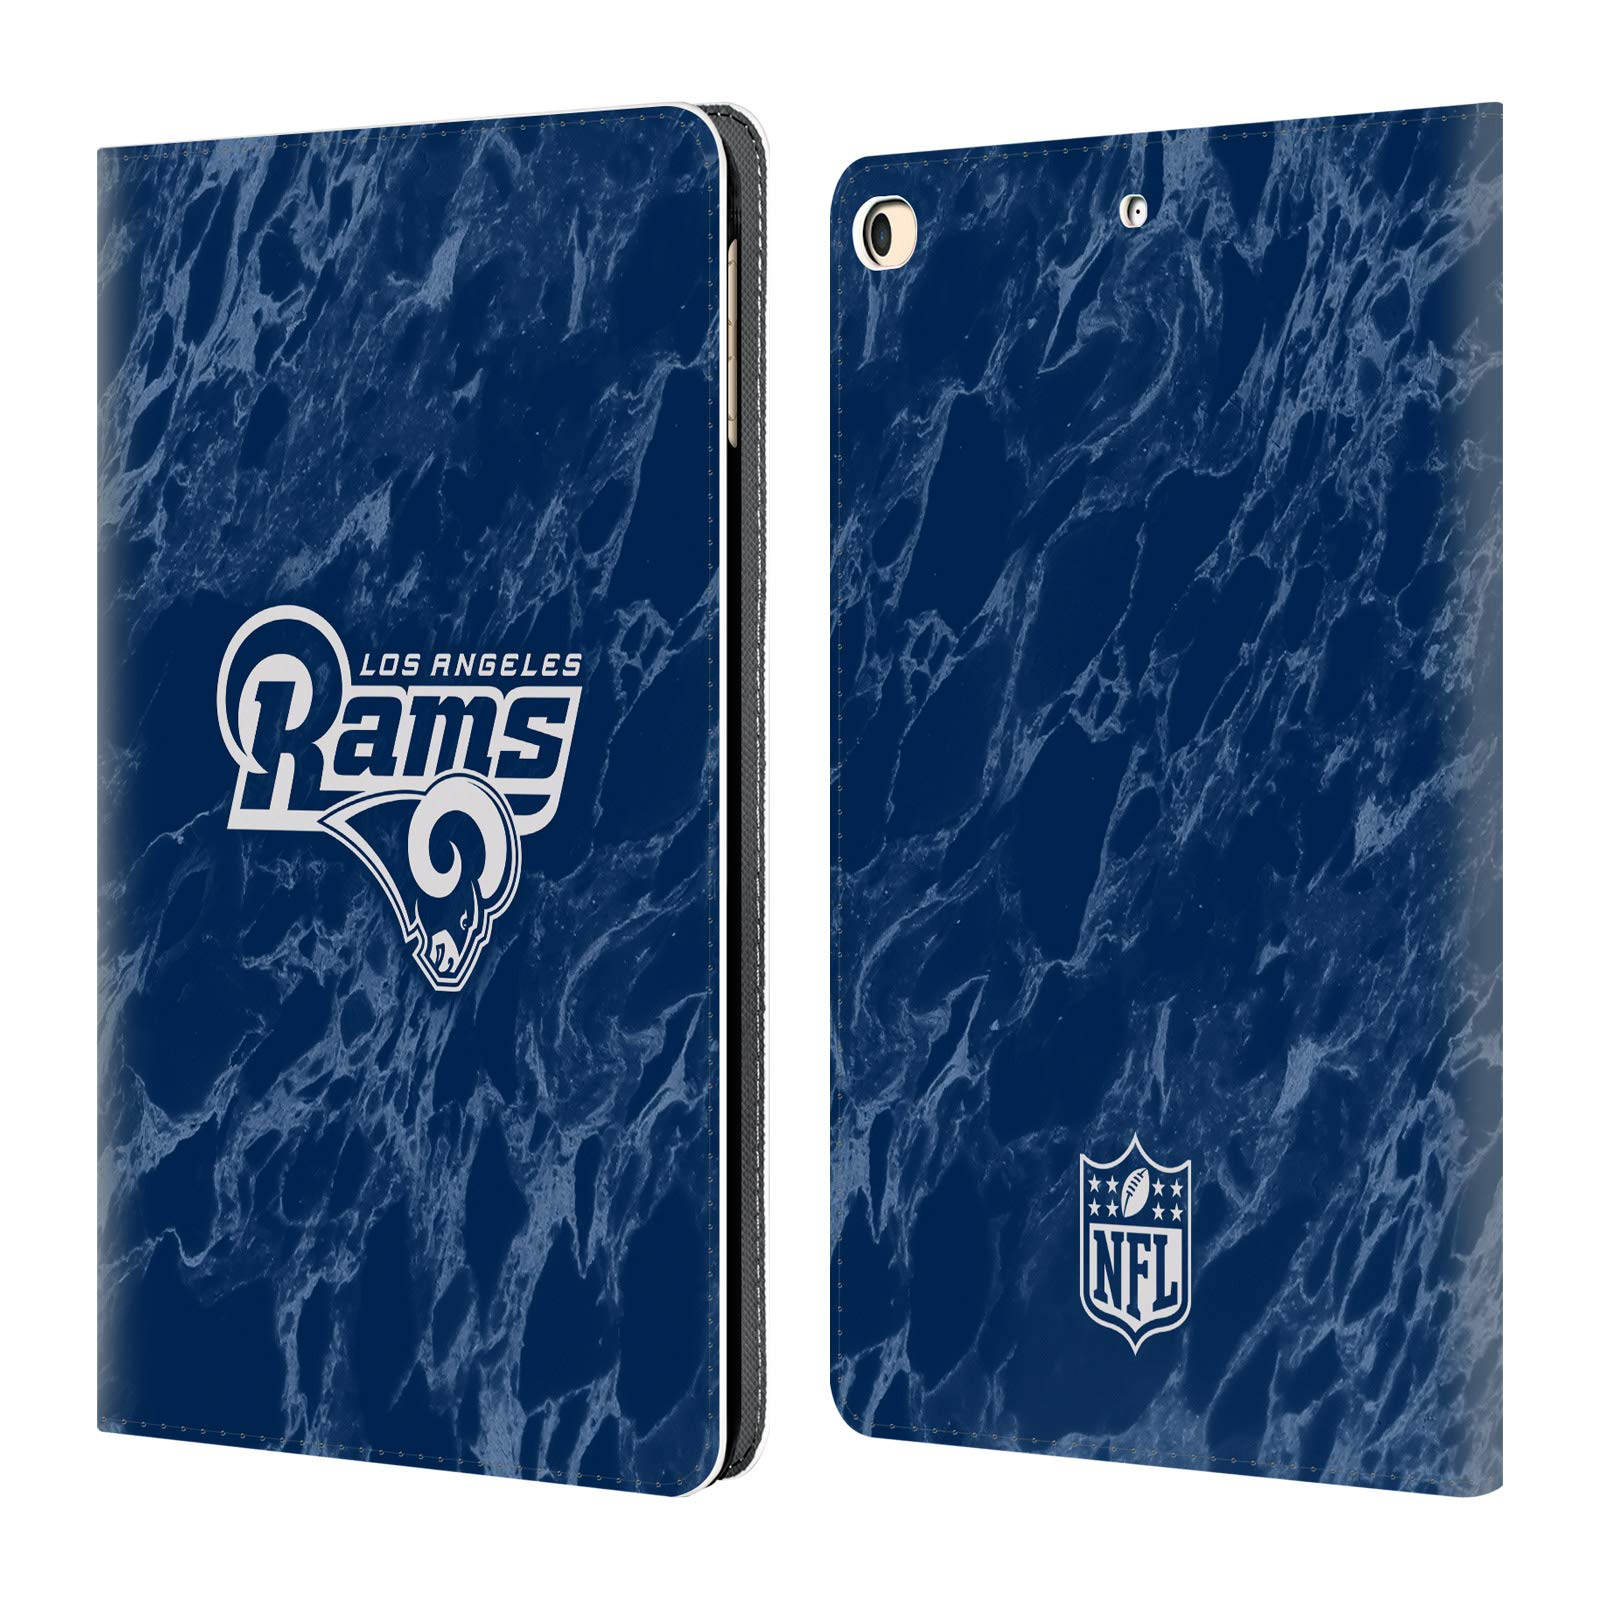 Official NFL Coloured Marble 2018/19 Los Angeles Rams Leather Book Wallet Case Cover for iPad 9.7 2017 / iPad 9.7 2018